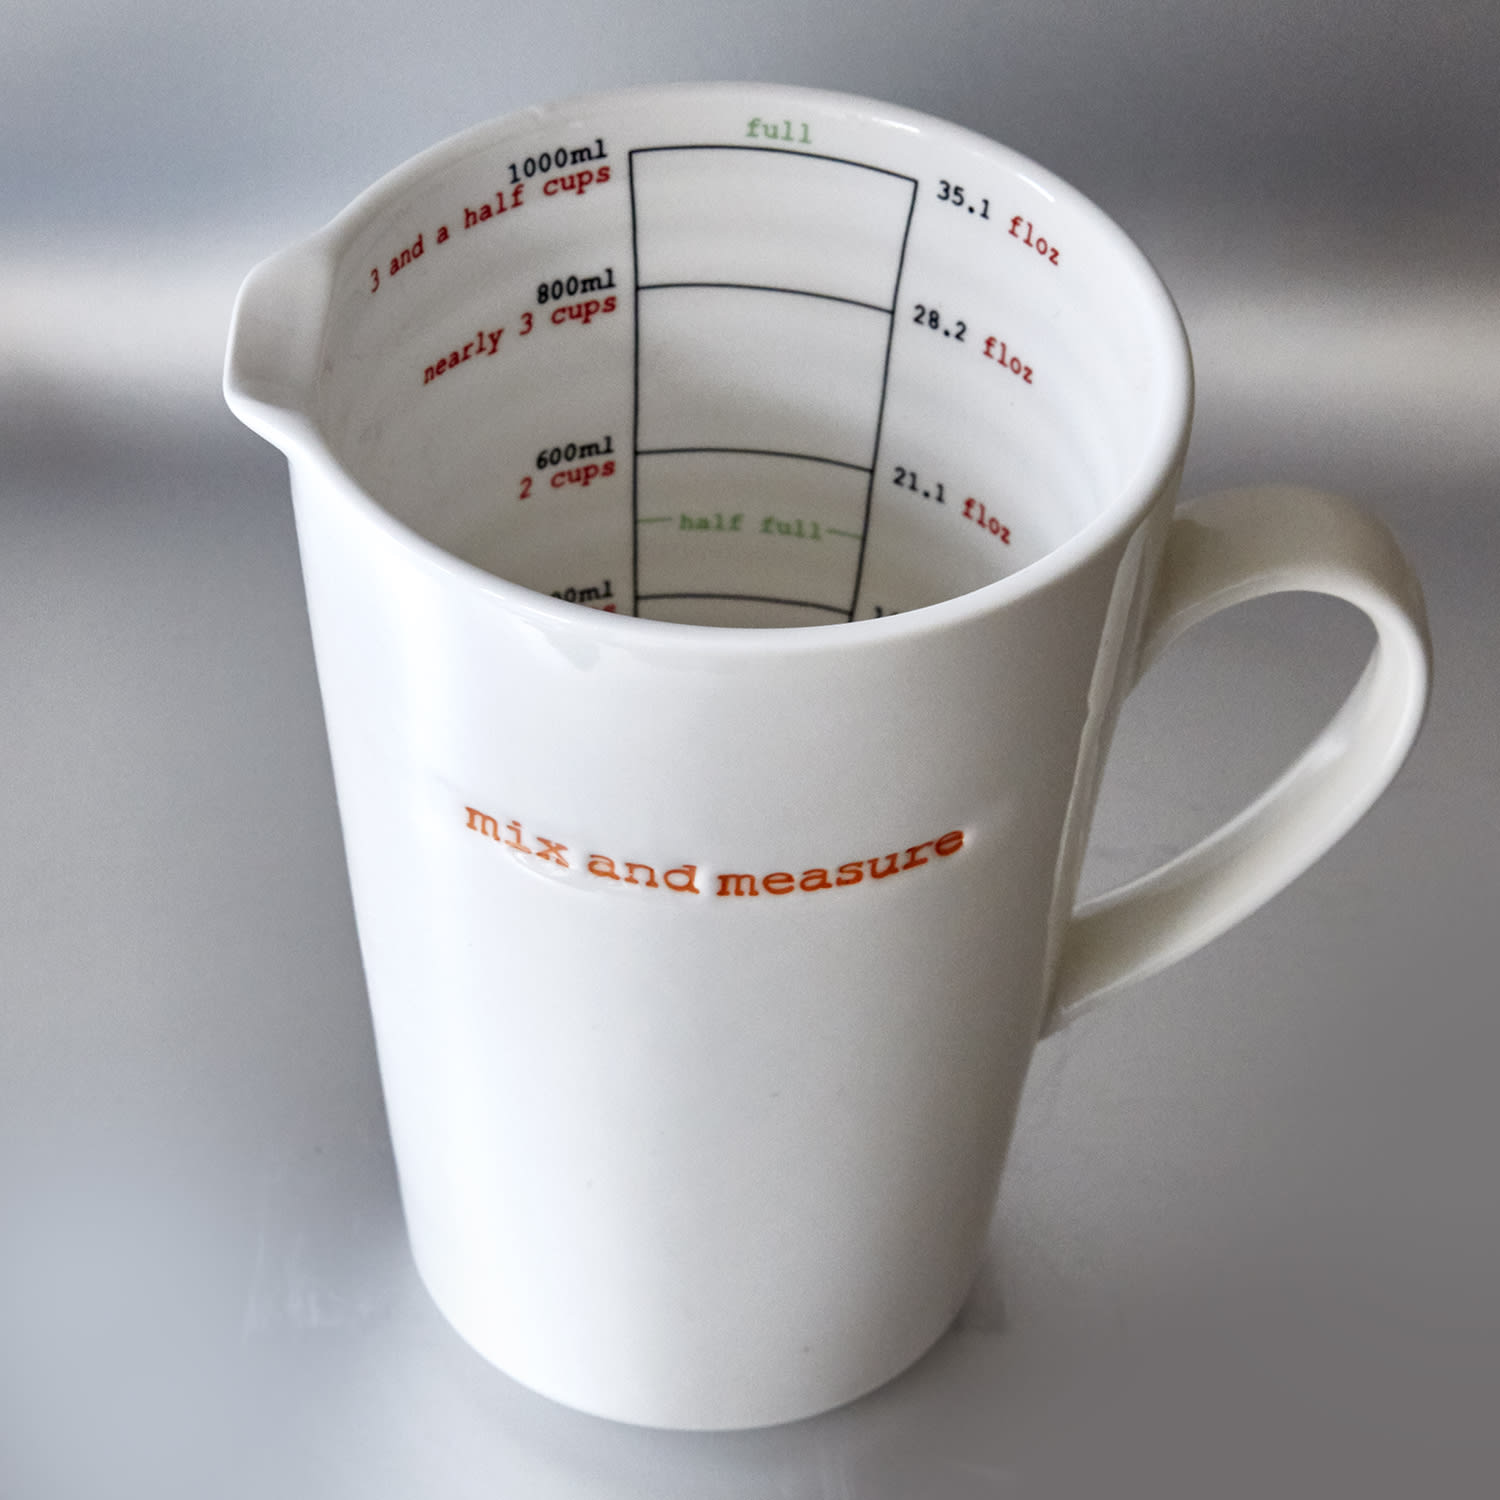 Made International Measuring Jug